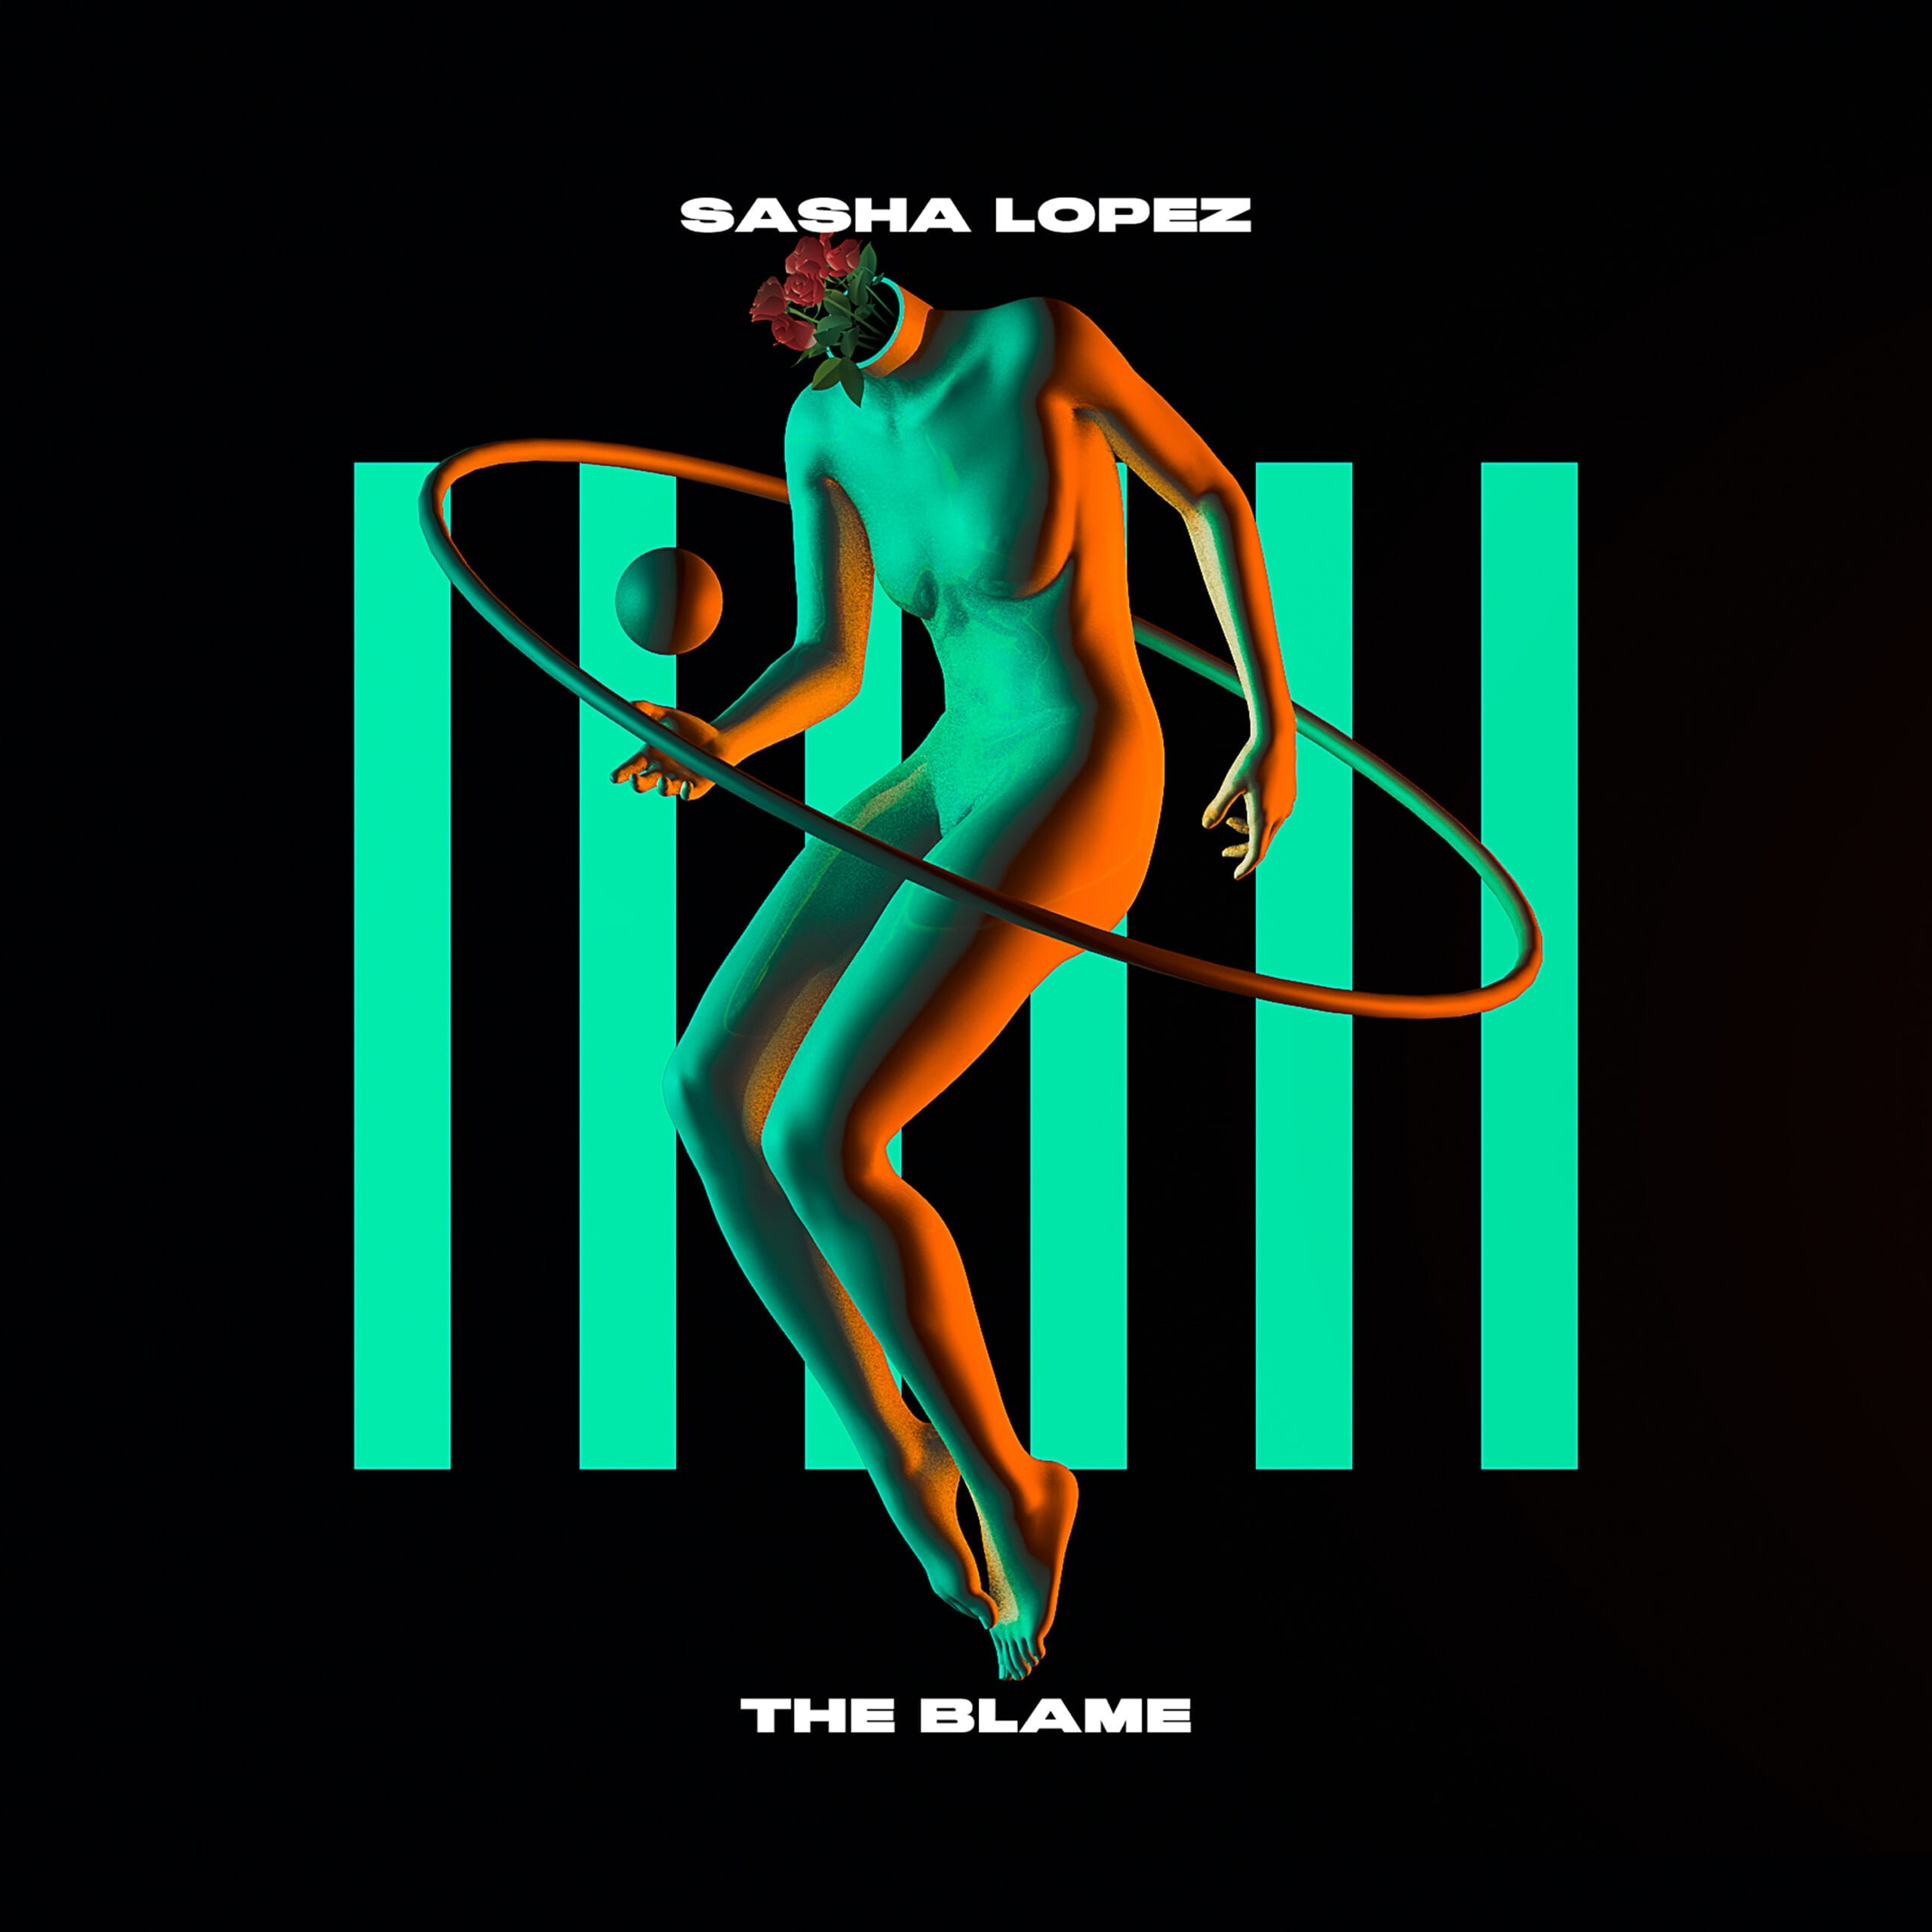 Sasha Lopez touches down with his latest single 'The Blame', as the producer hailing from Bucharest serves up another fine slice of electronica.